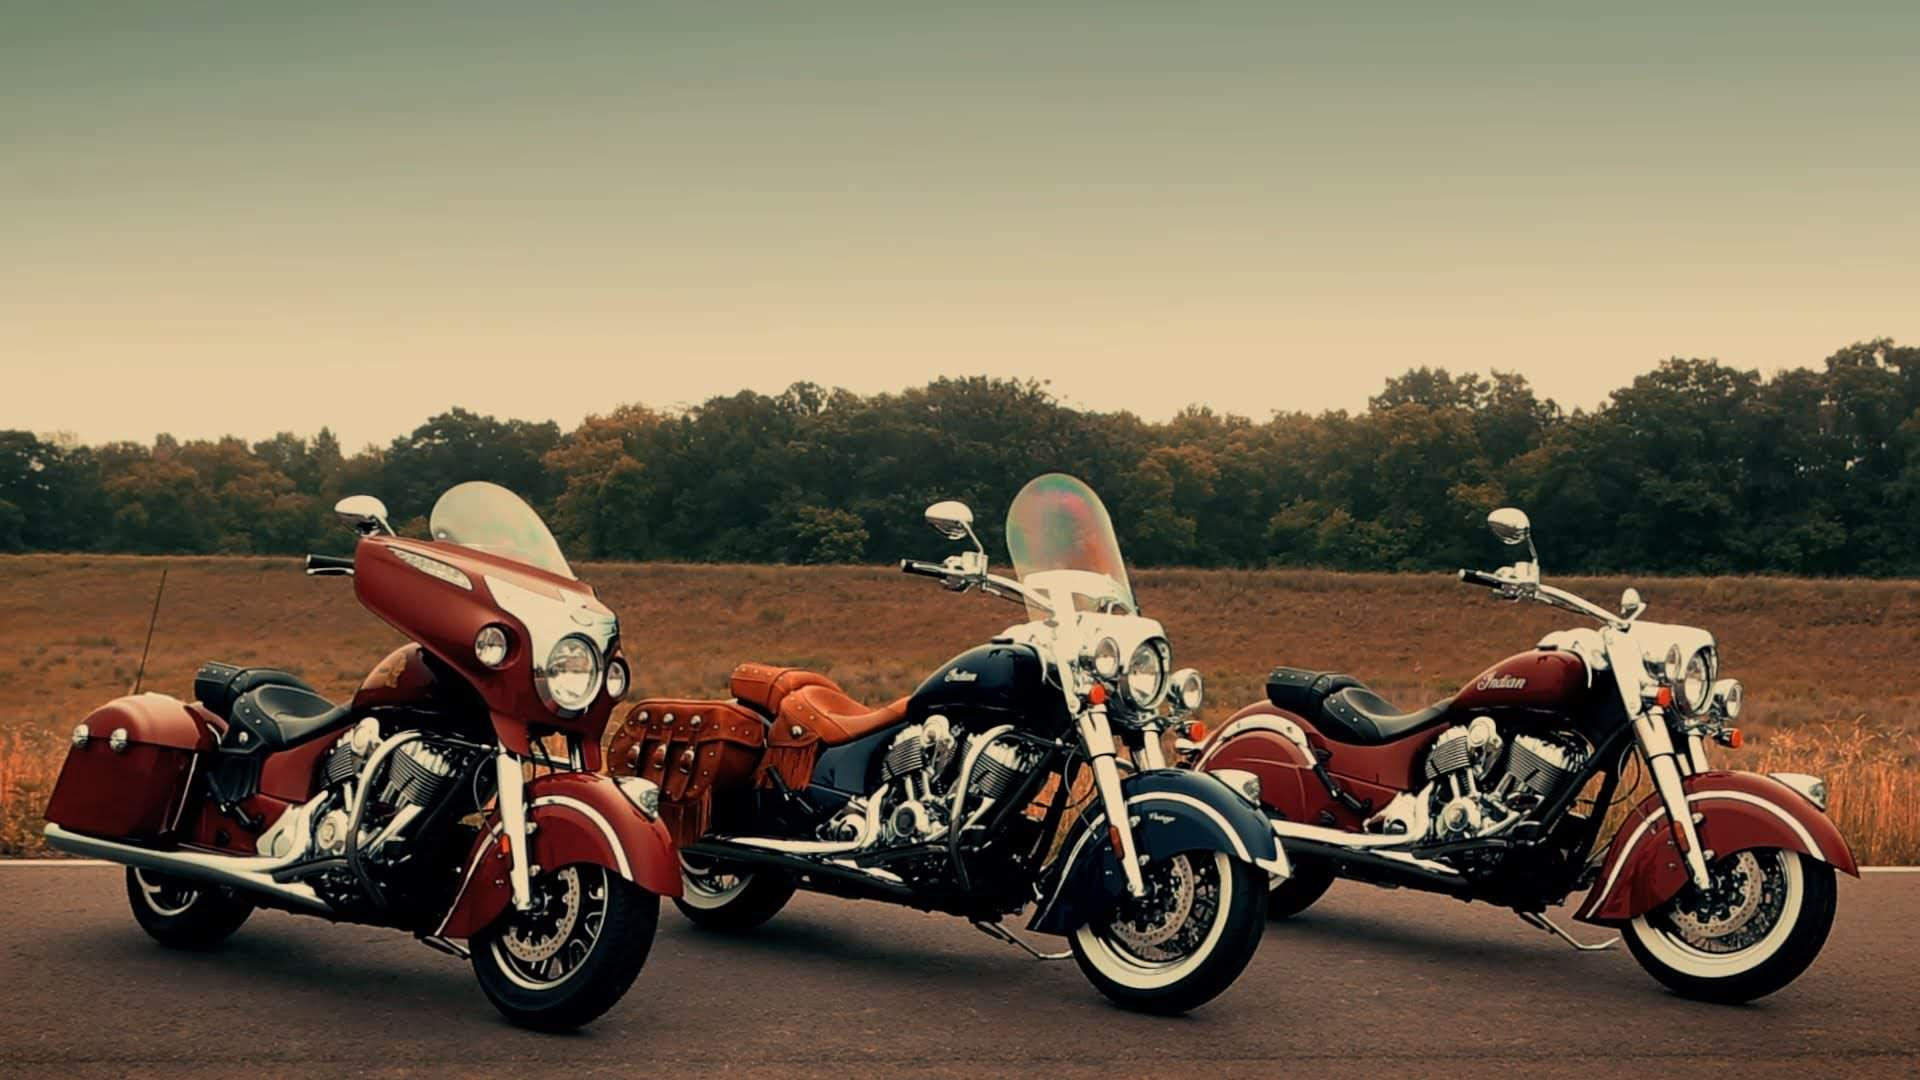 2014 Indian Motorcycle Wallpaper